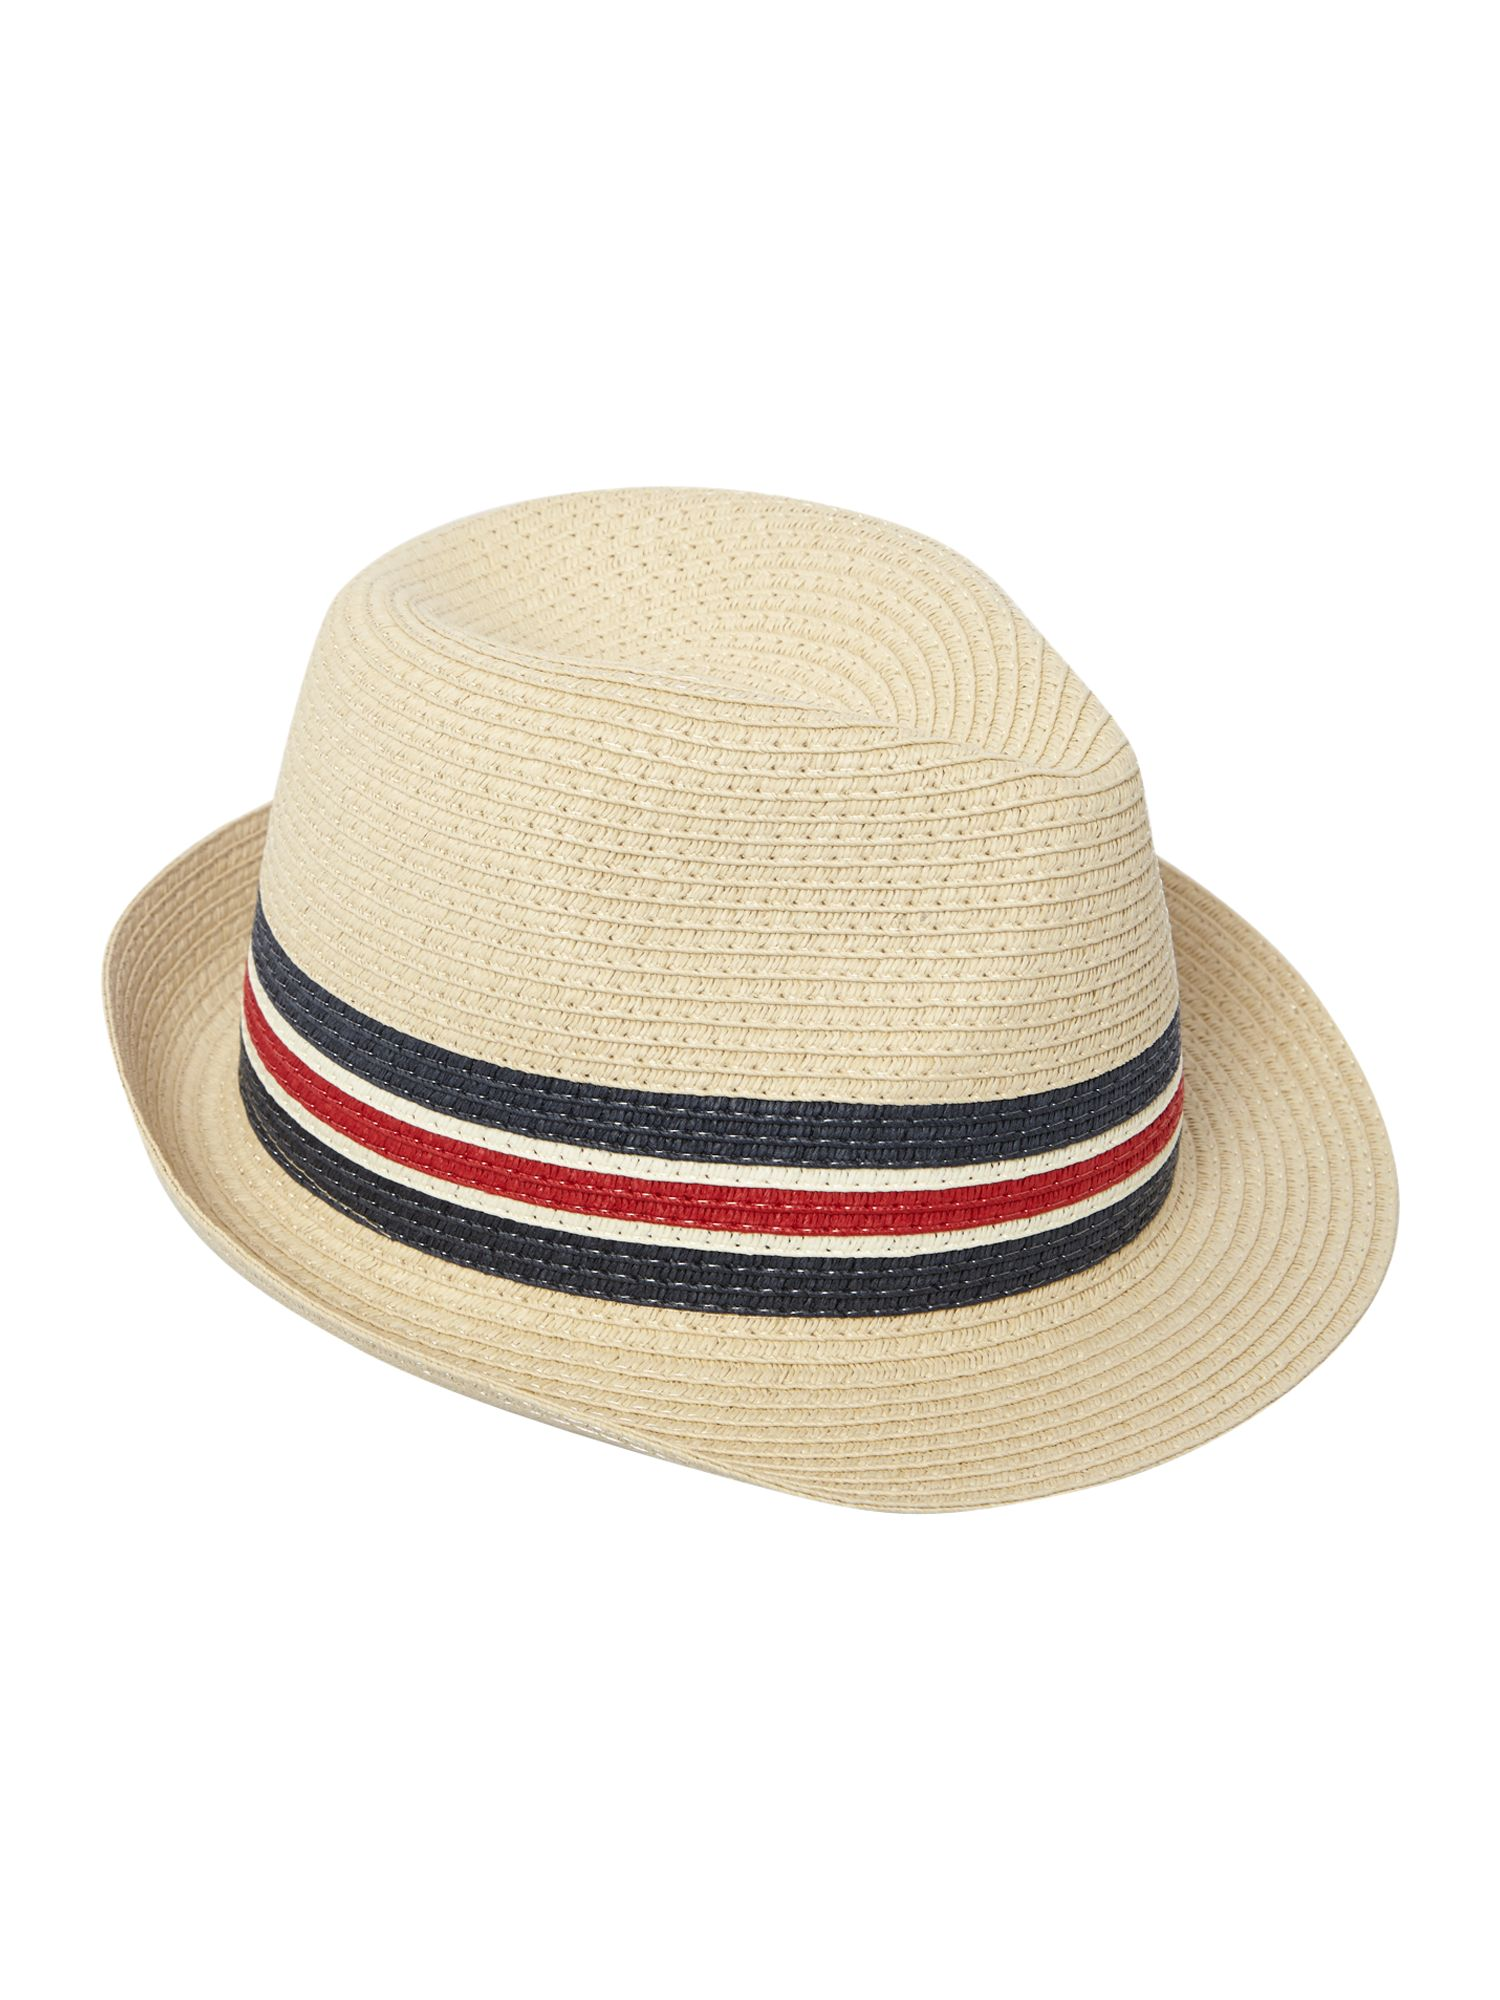 Paper straw trilby with woven band